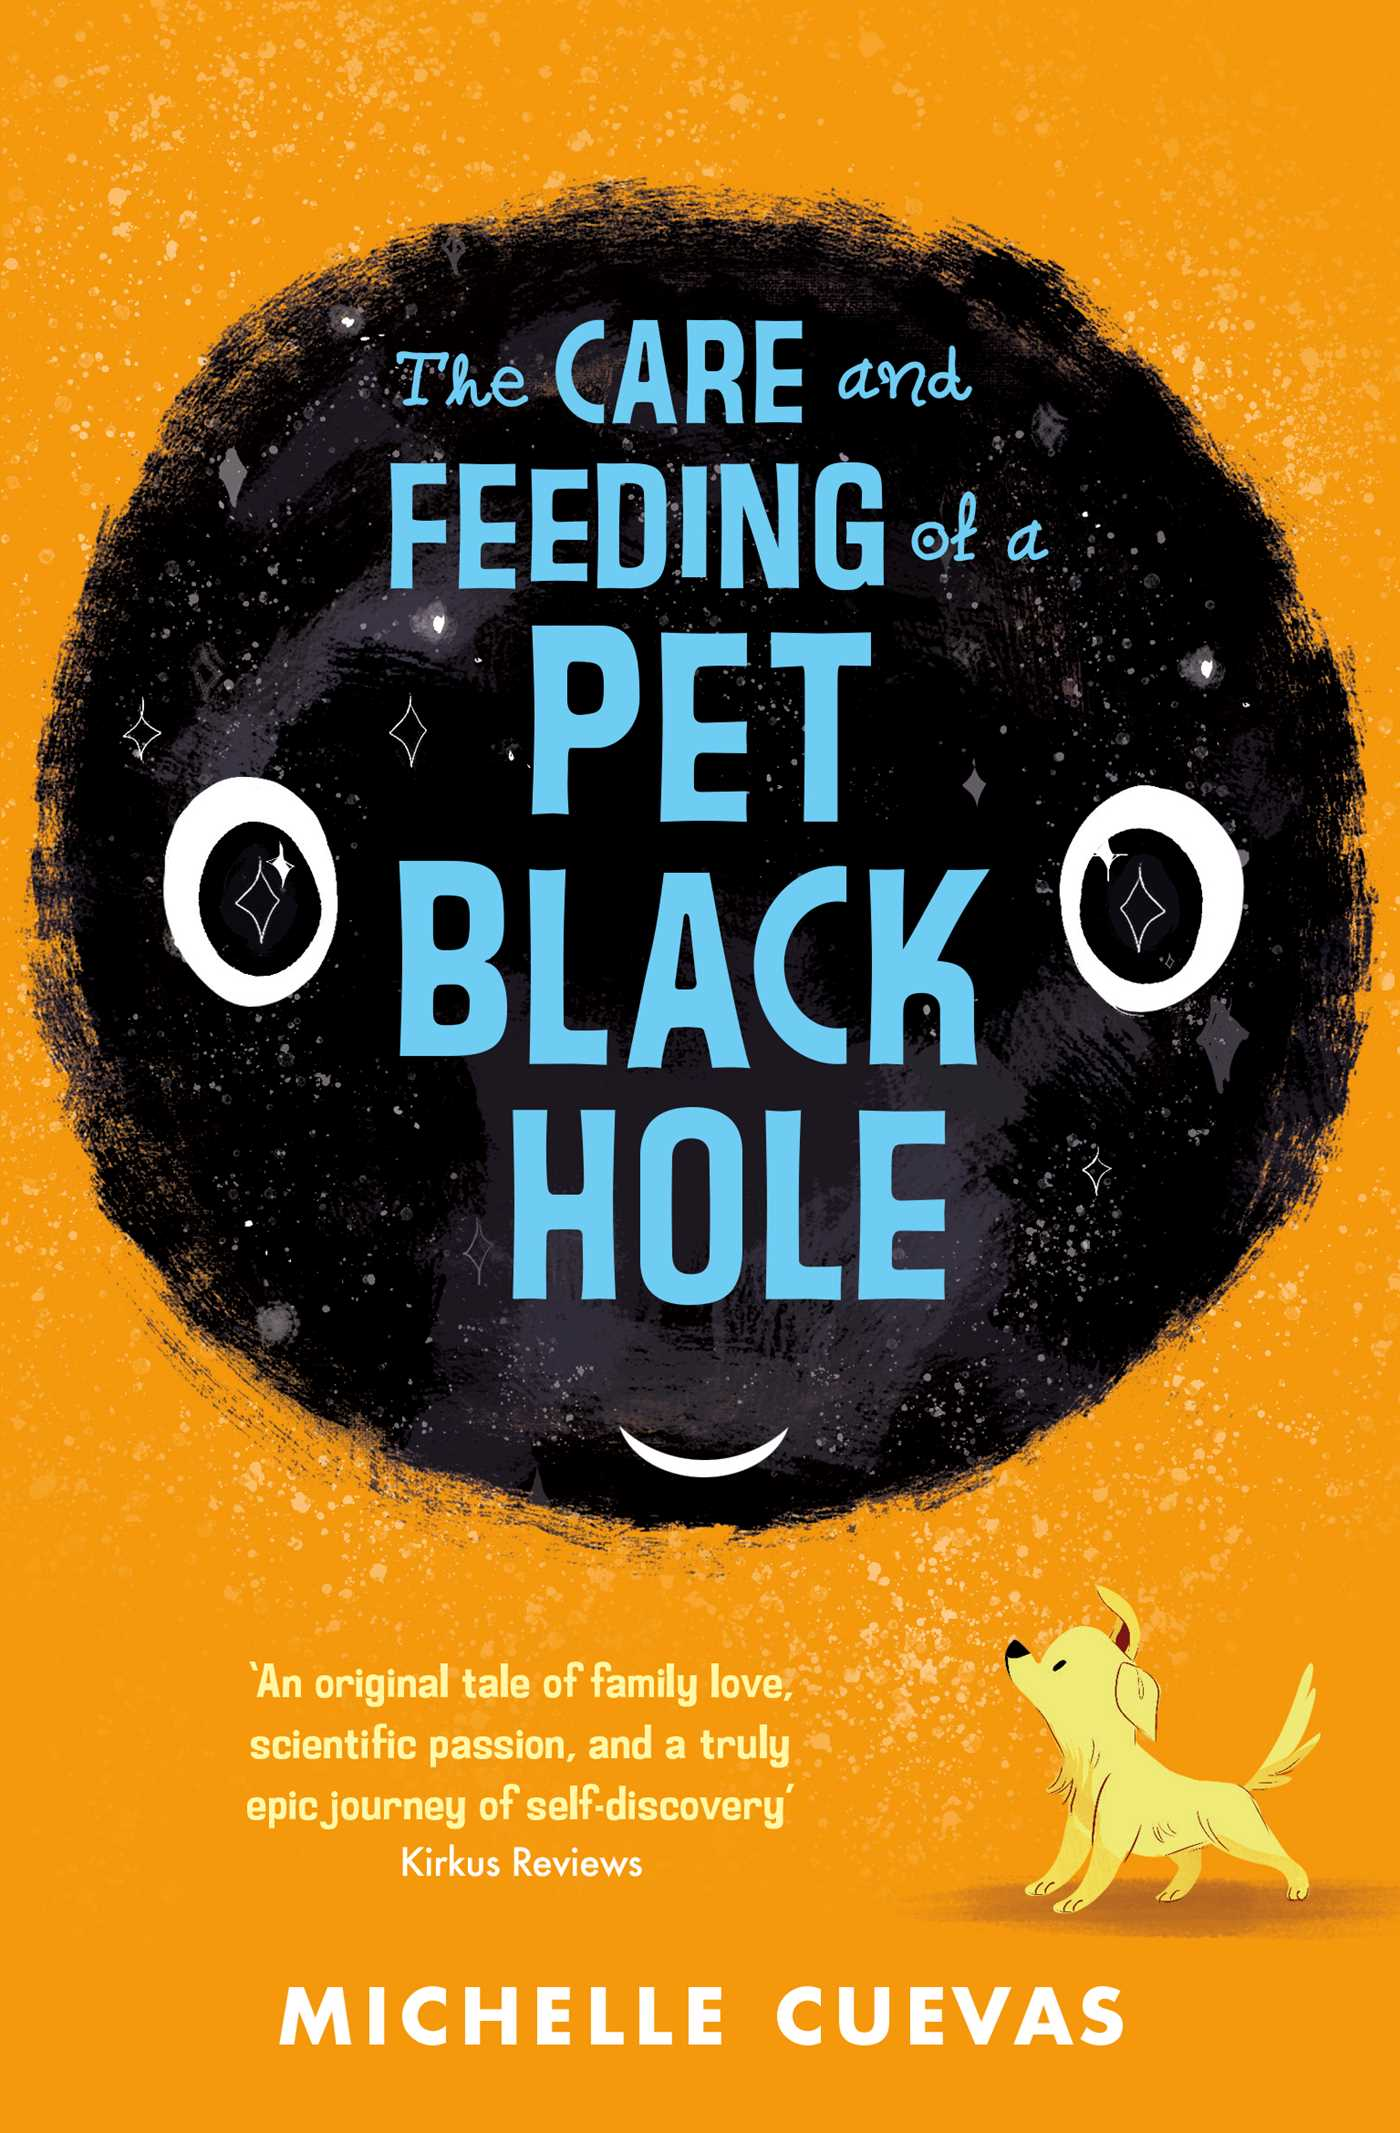 The care and feeding of a pet black hole 9781471170188 hr